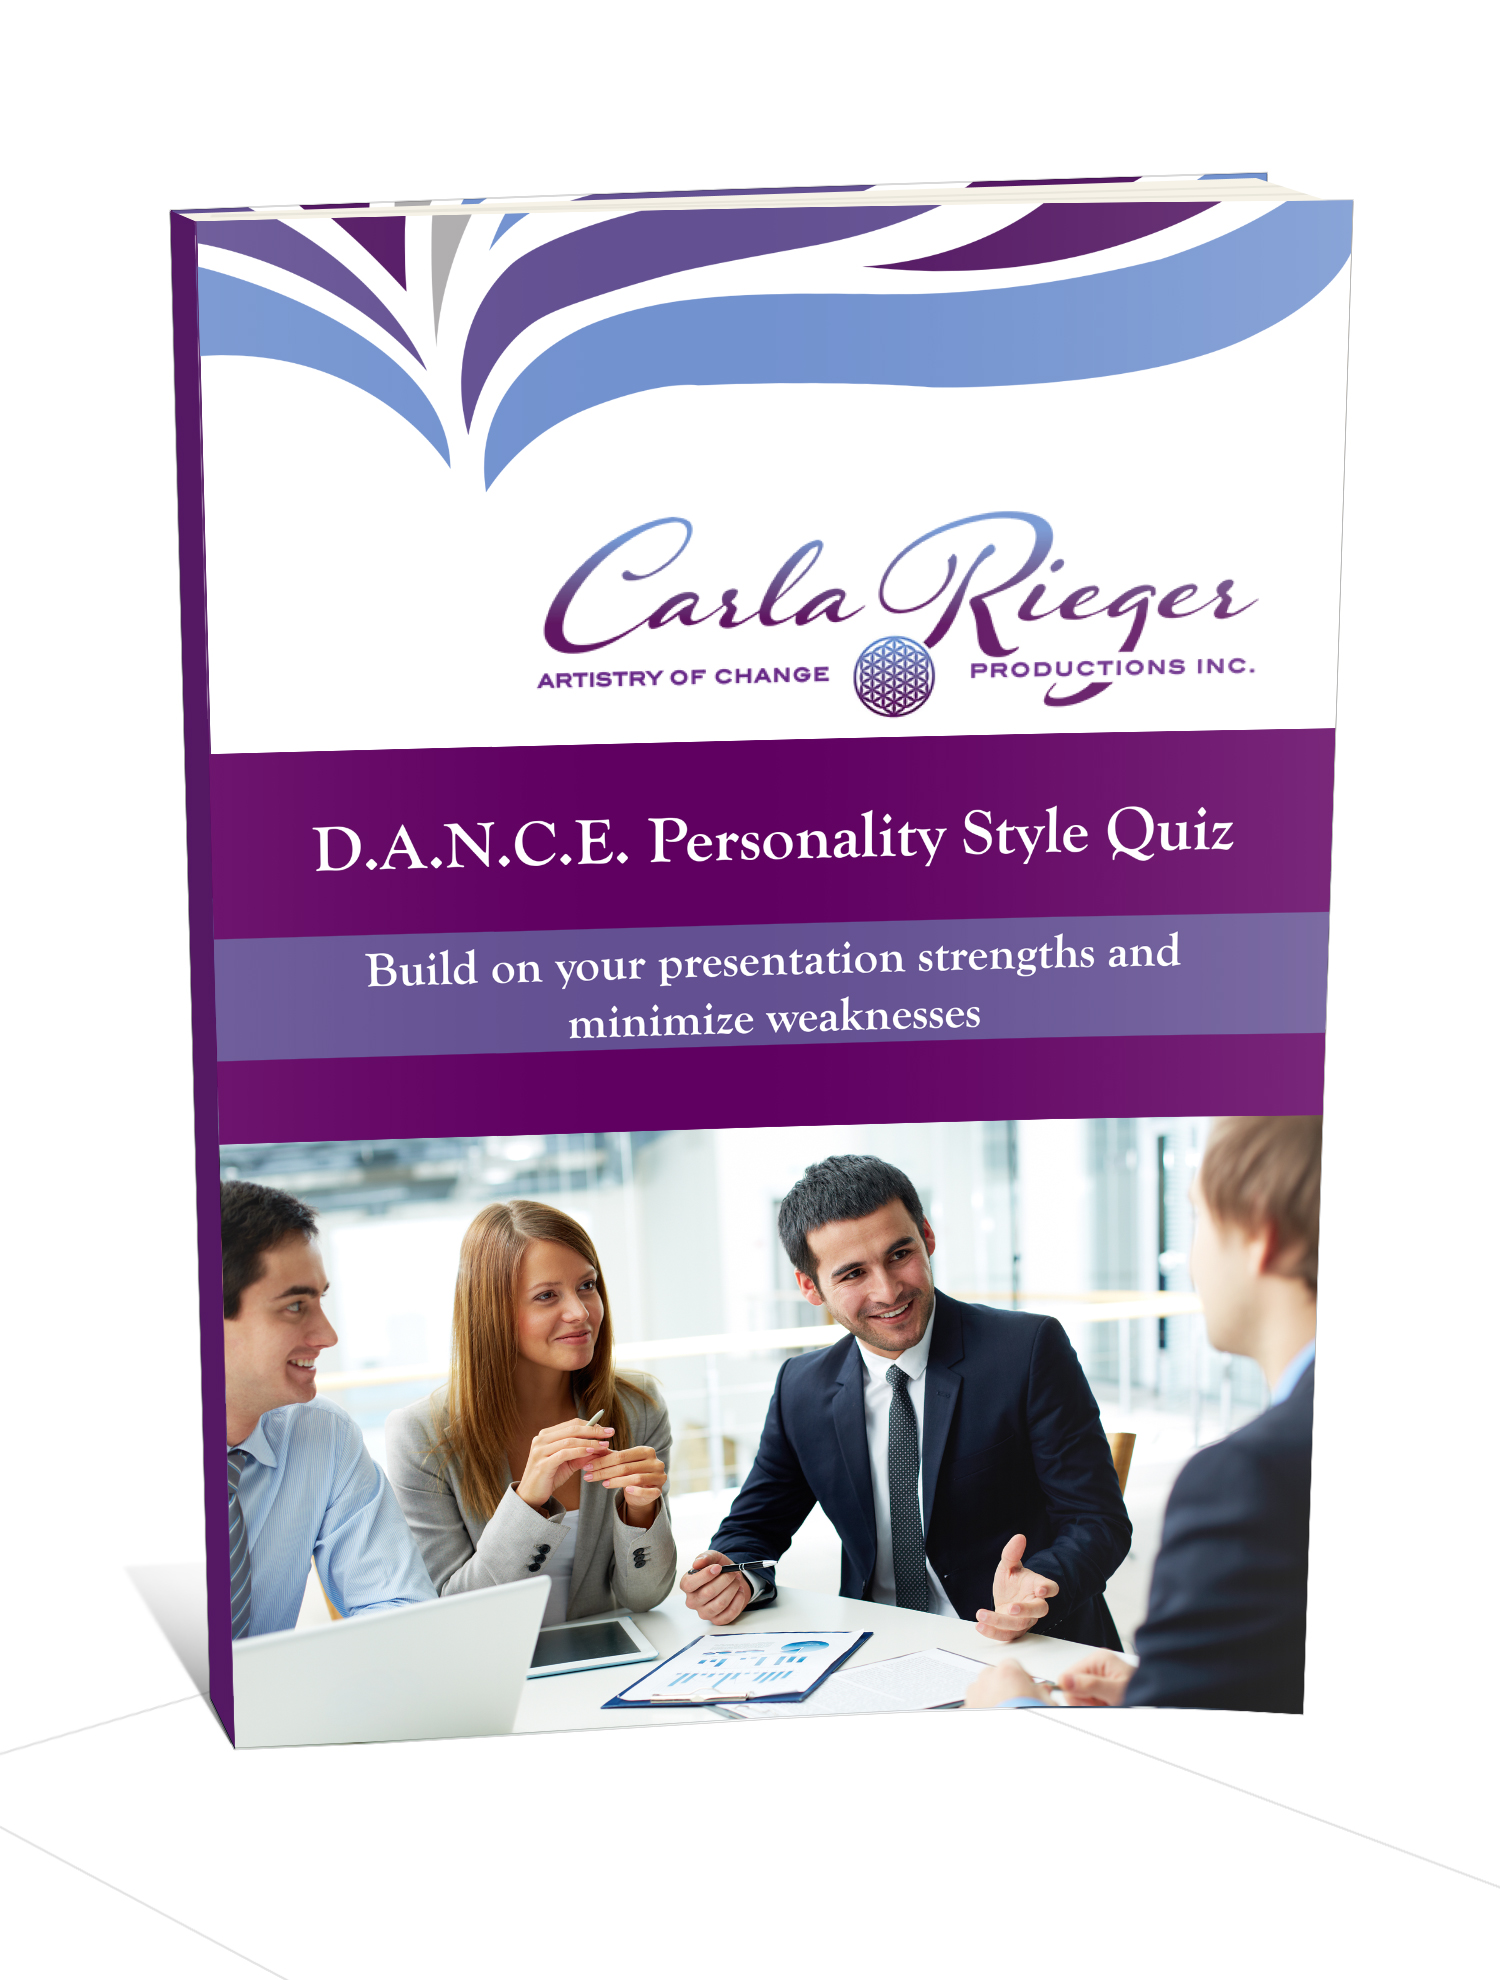 Carla Rieger My Year In Review 3 Habits That Made A Huge